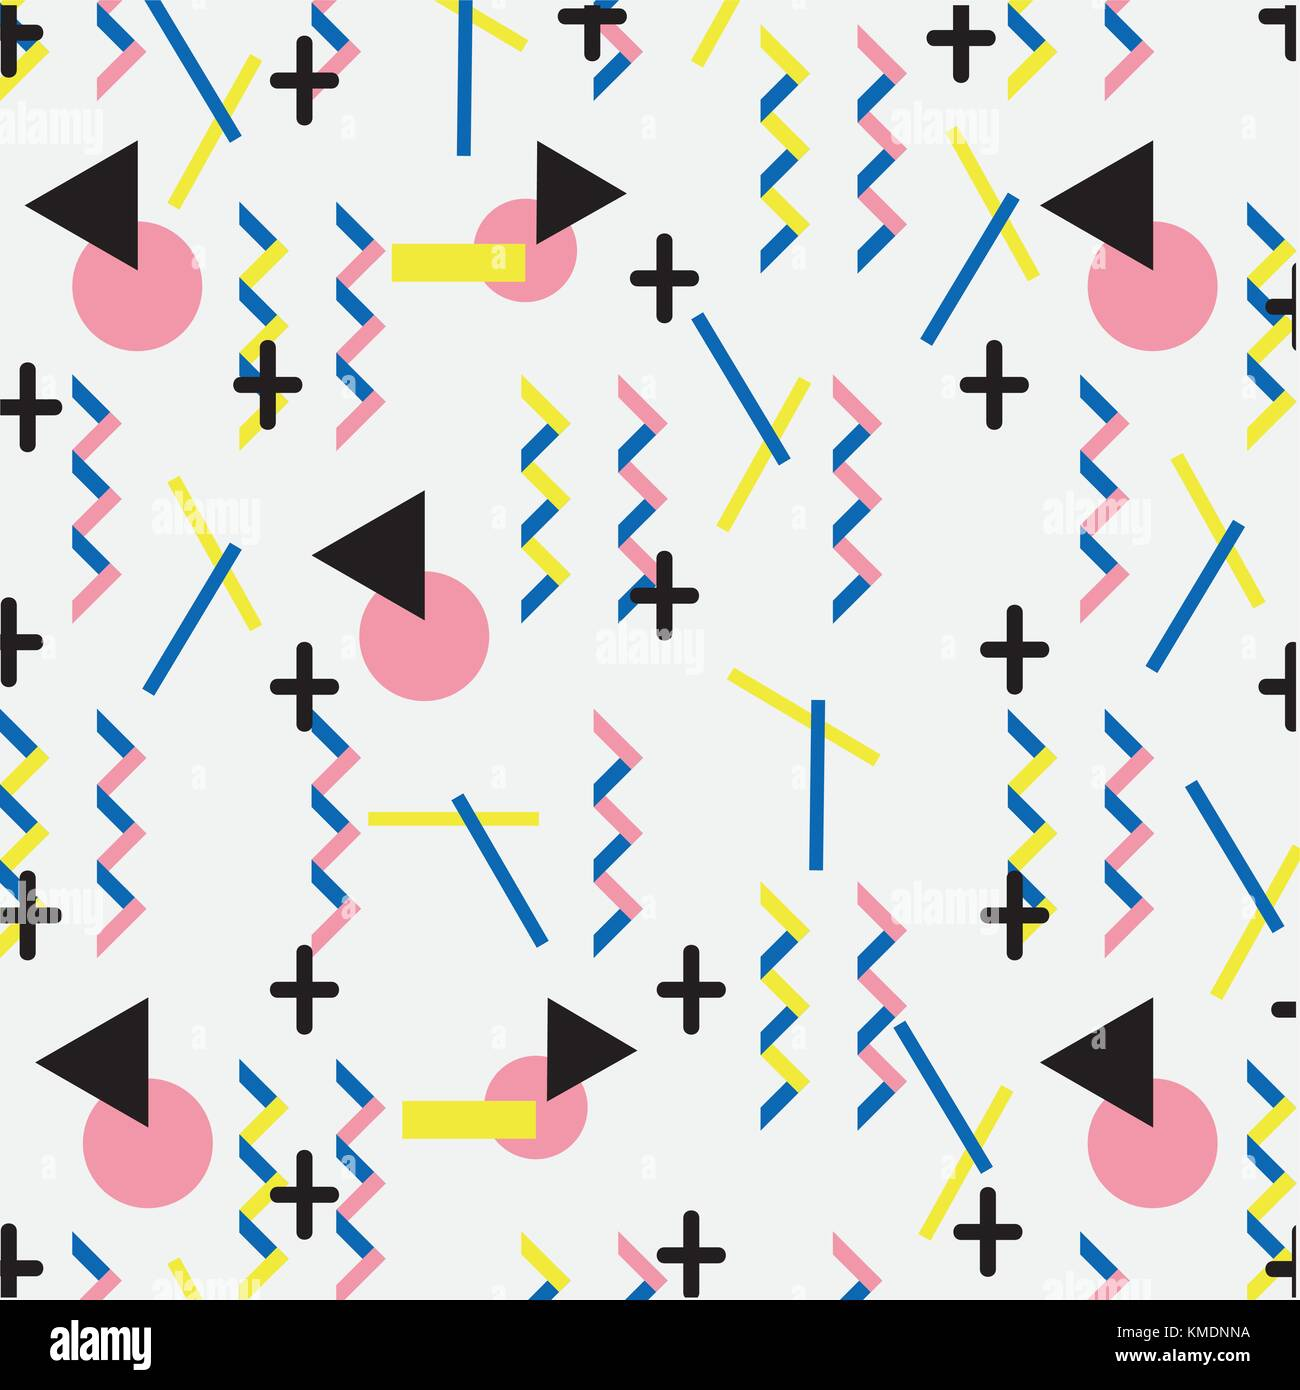 geometric figures abstract memphis style background - Stock Image